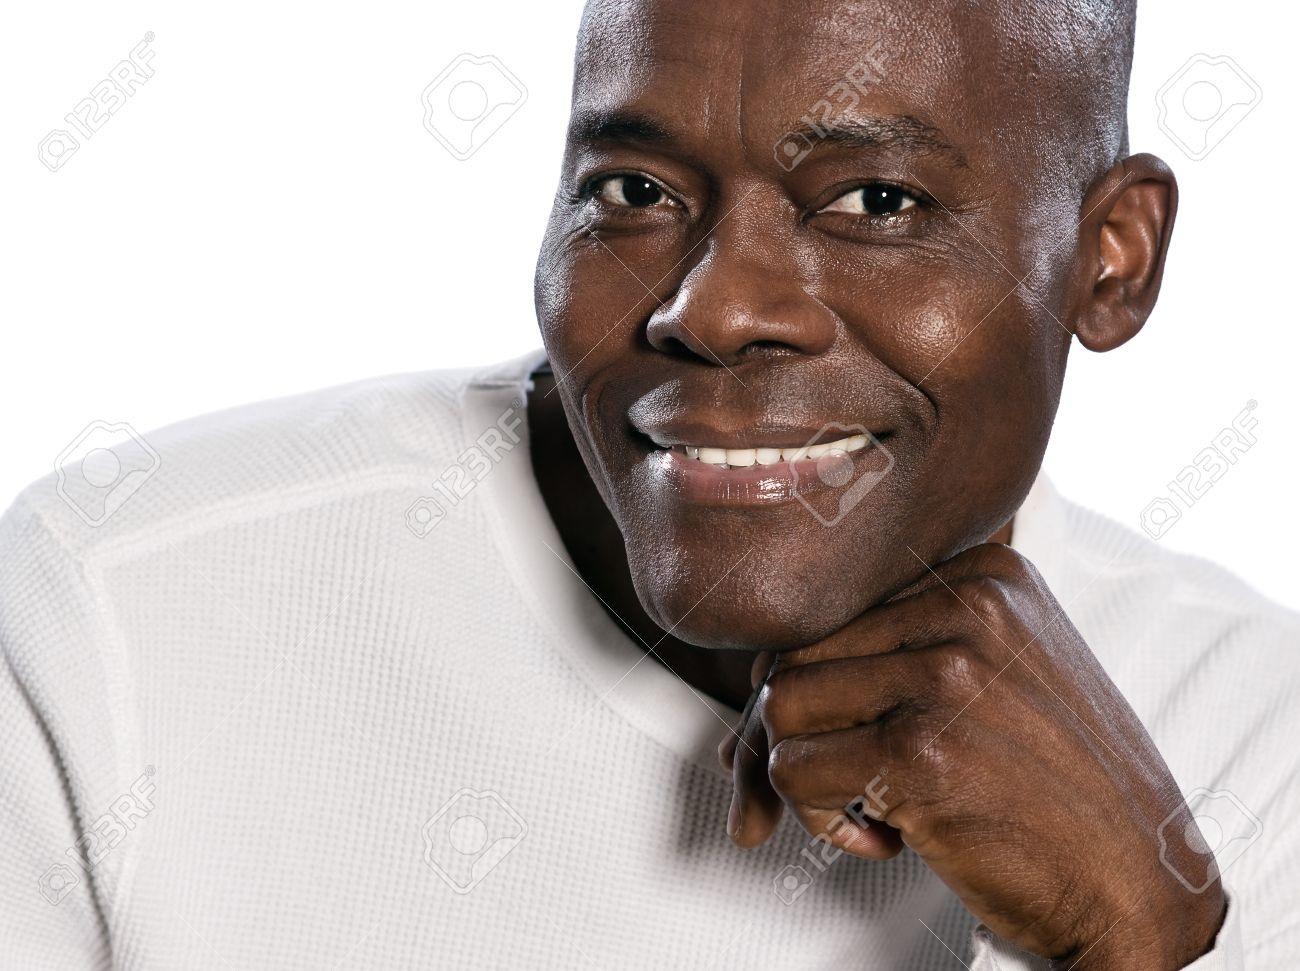 Close-up portrait of an afro American mature man smiling with hand on chin  in